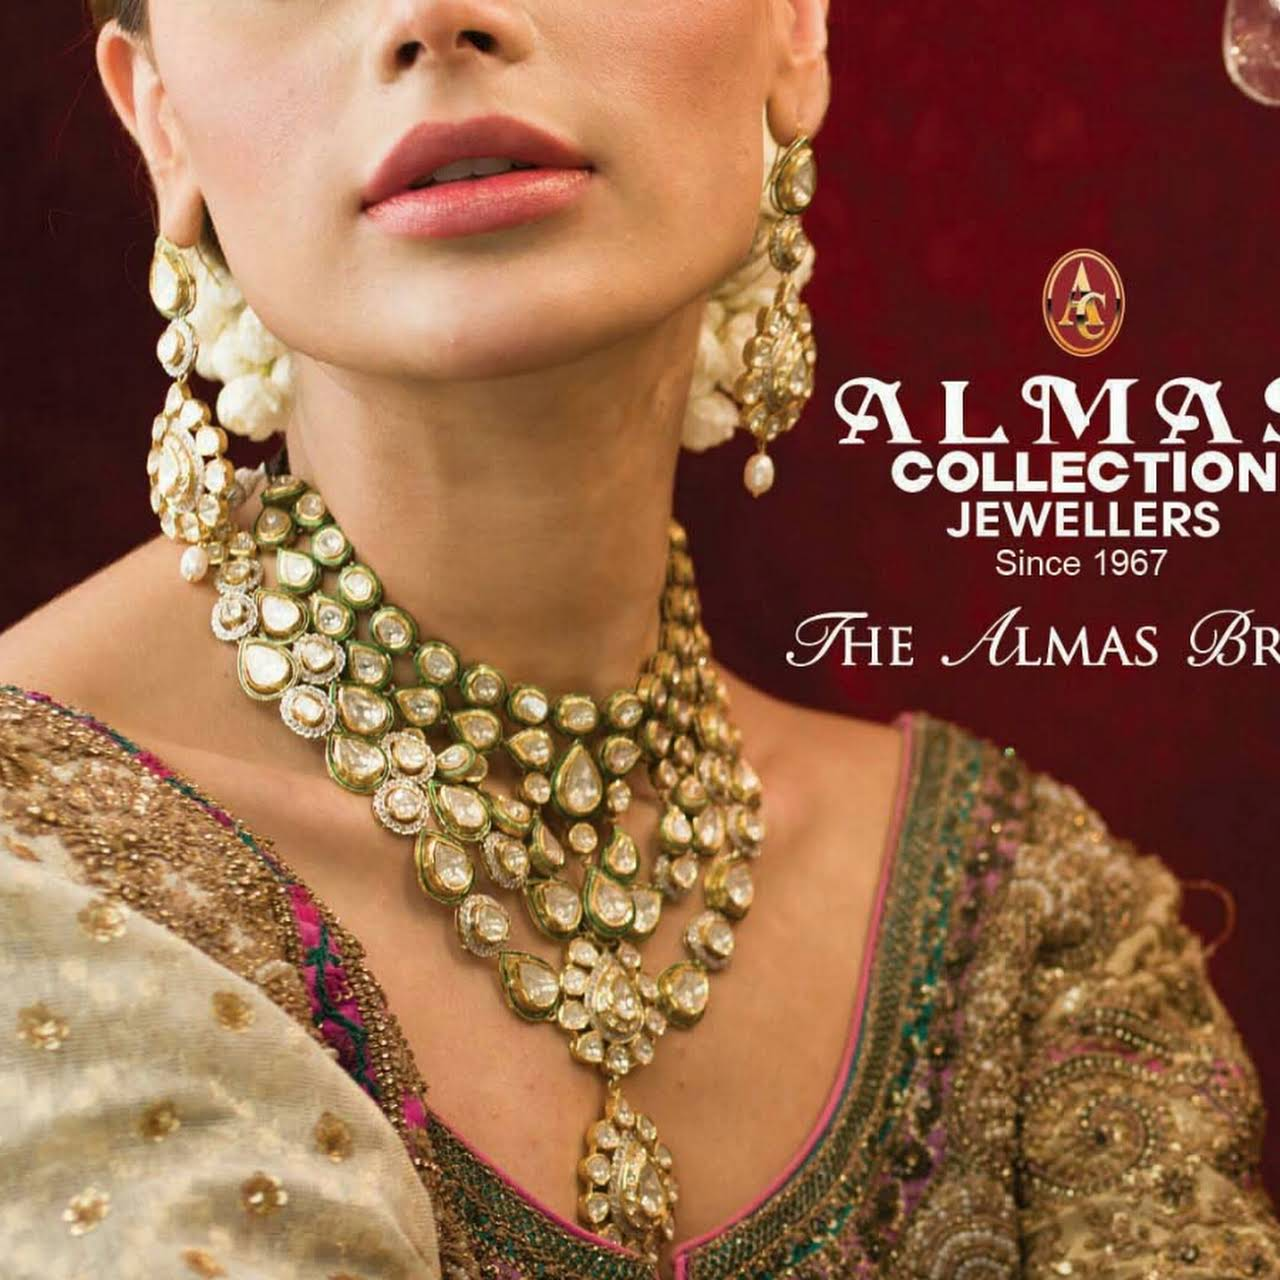 90ddb61168641 Almas Collection Jewellers - Jewelry Store in Karachi